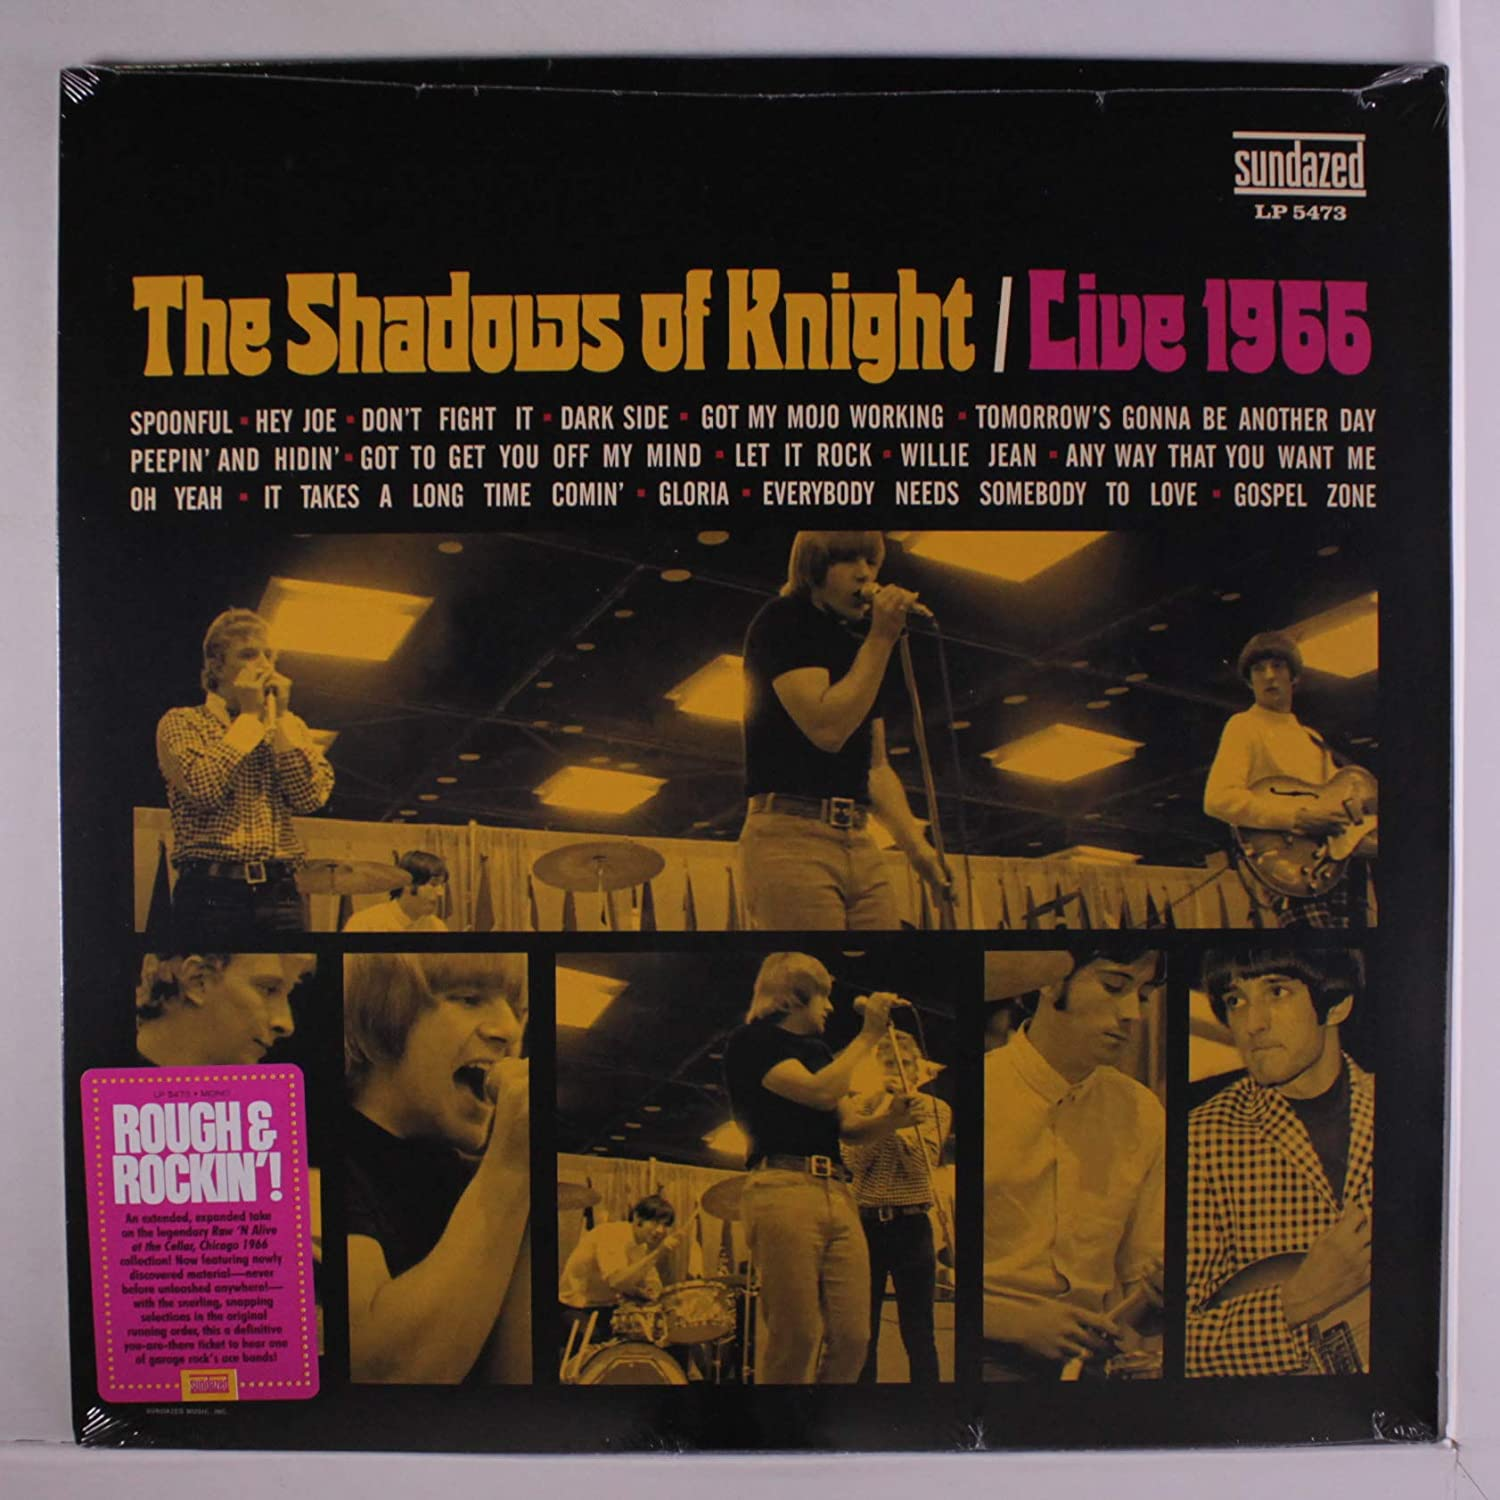 Shadows of Knight, The/Live 1966 [LP]